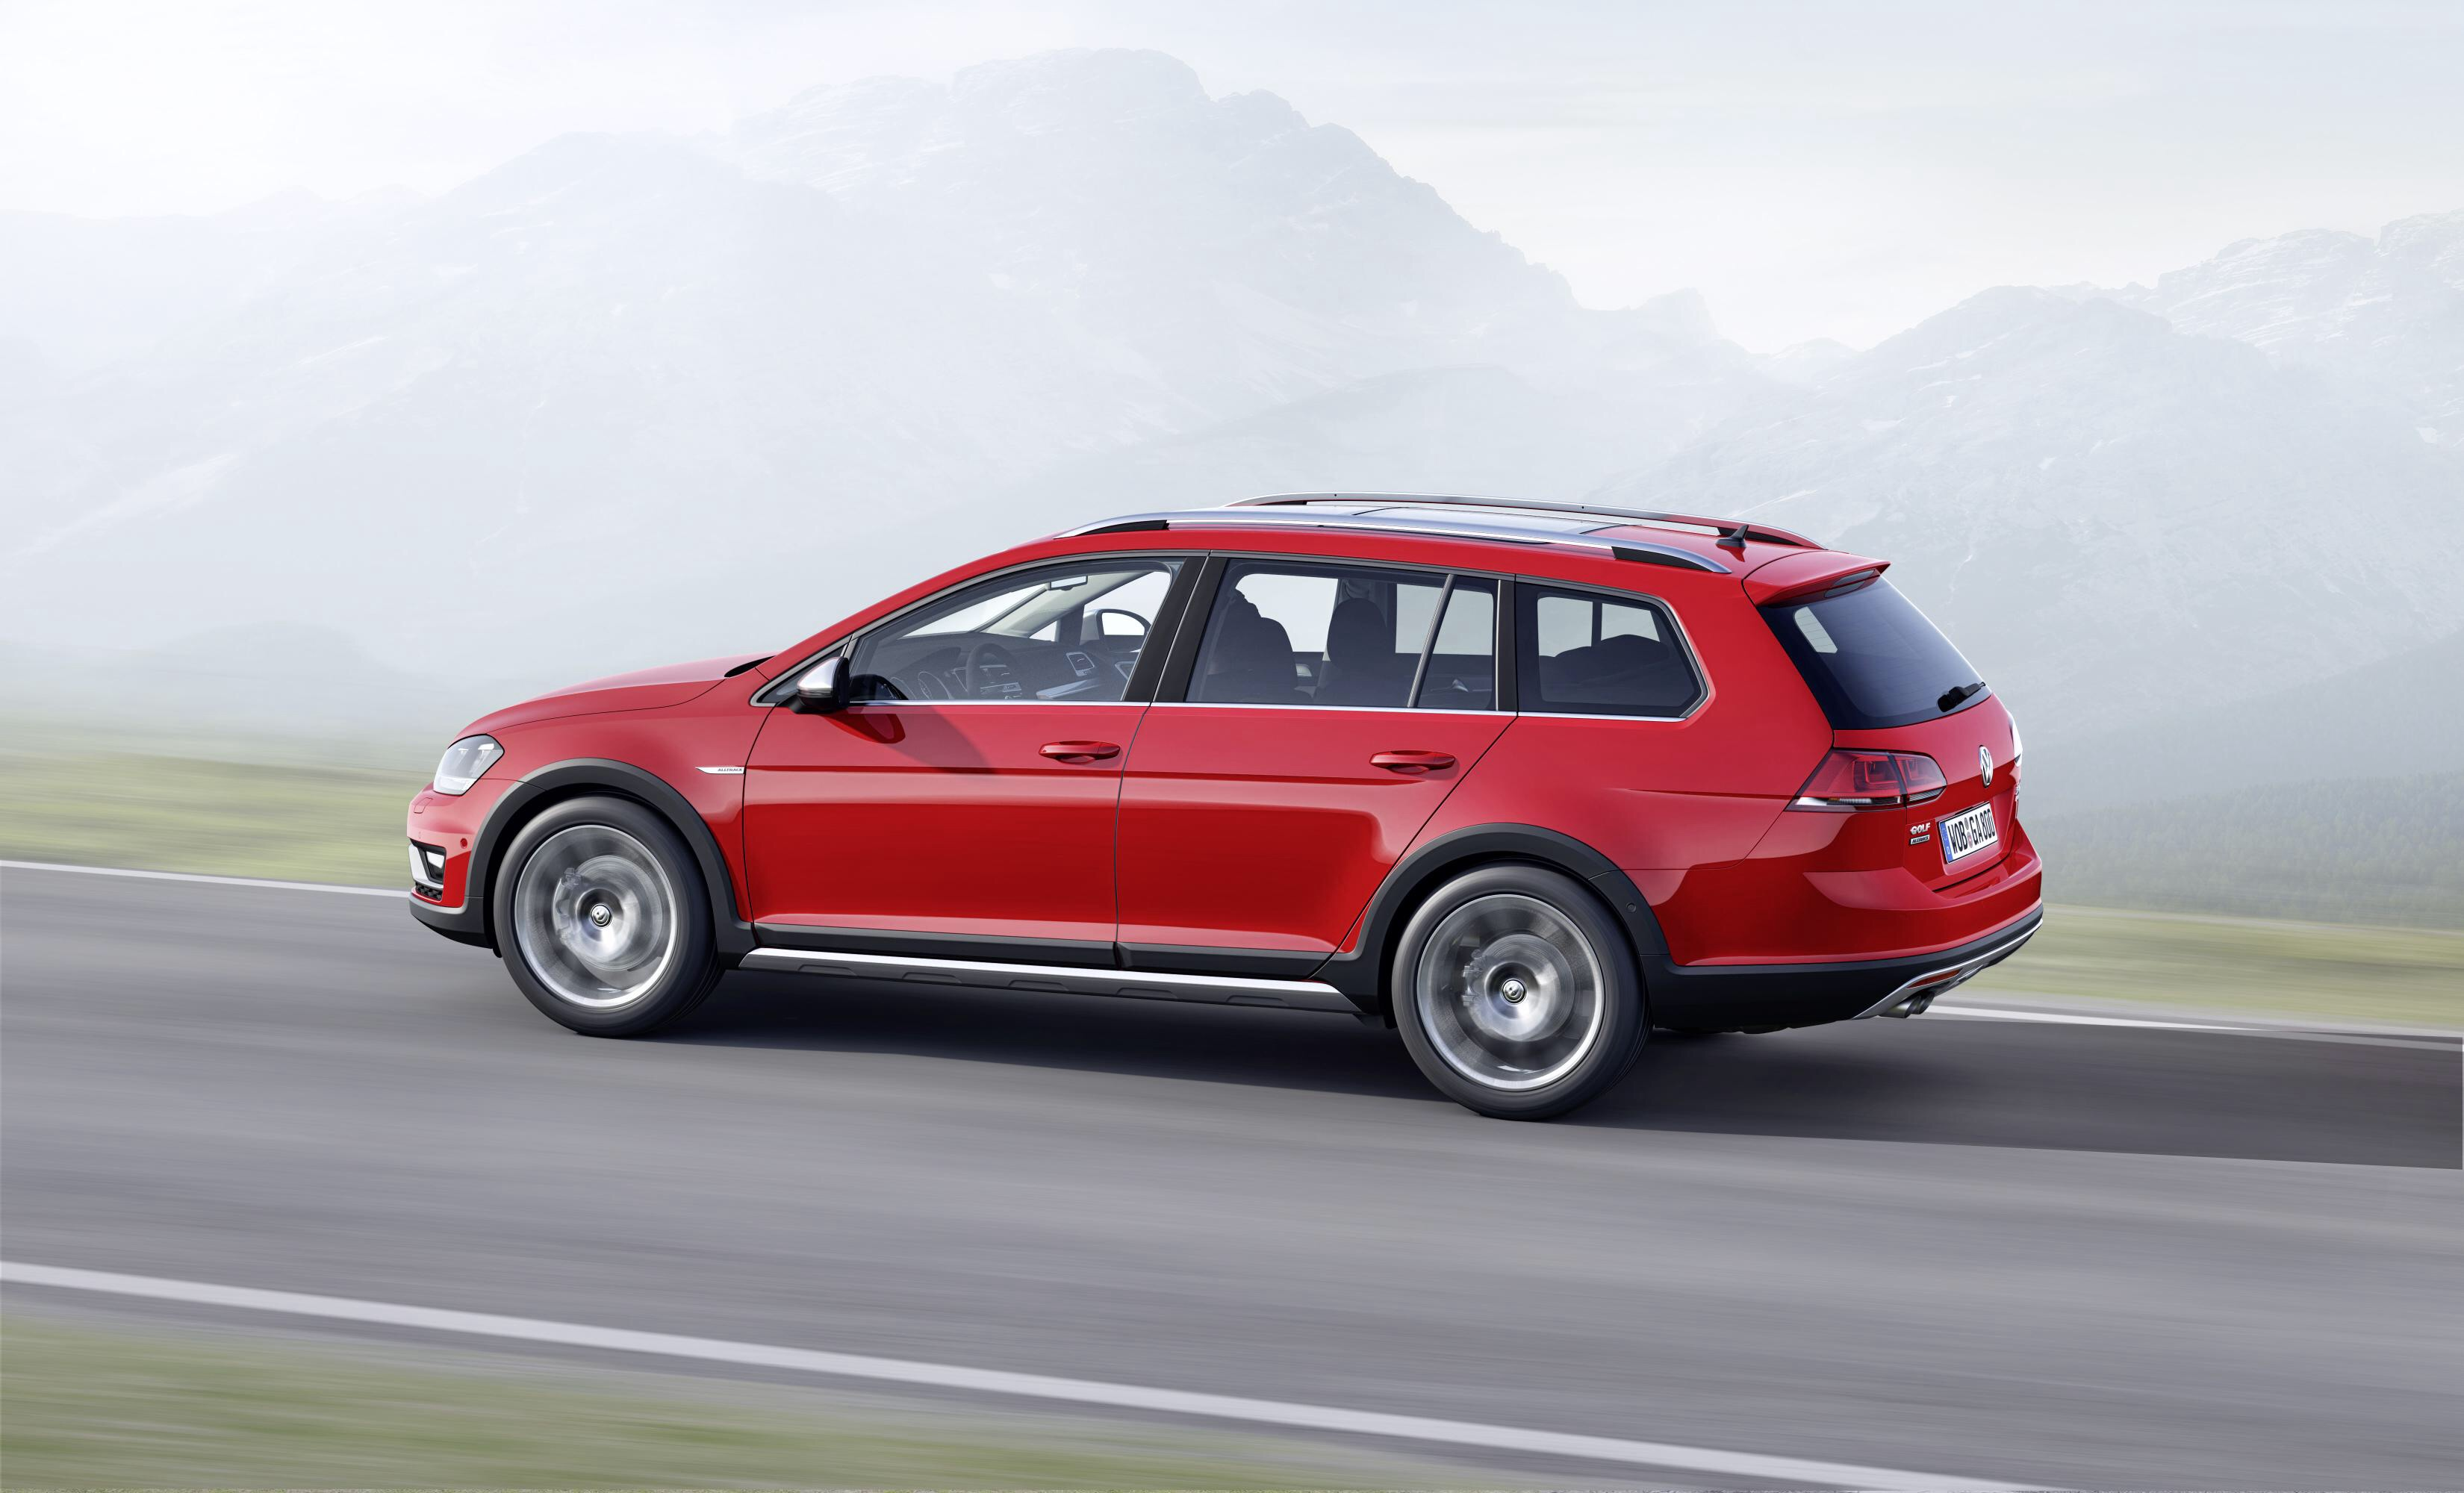 Vw S Golf In Welly Boots The Eco Friendly Alltrack